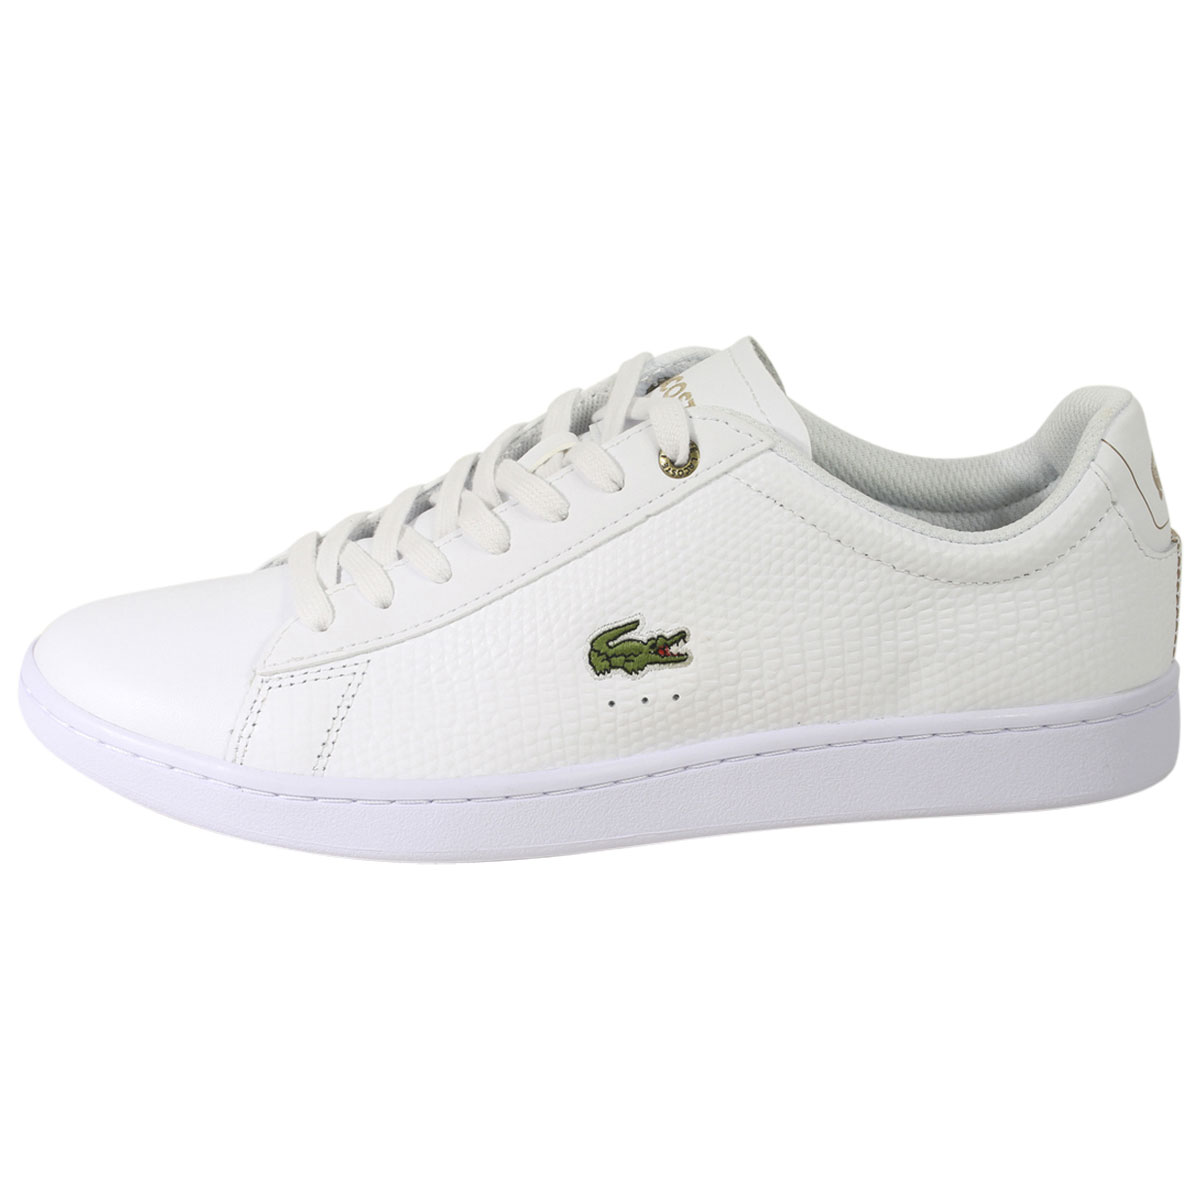 Lacoste-Men-039-s-Carnaby-EVO-118-Trainers-Sneakers-Shoes thumbnail 24